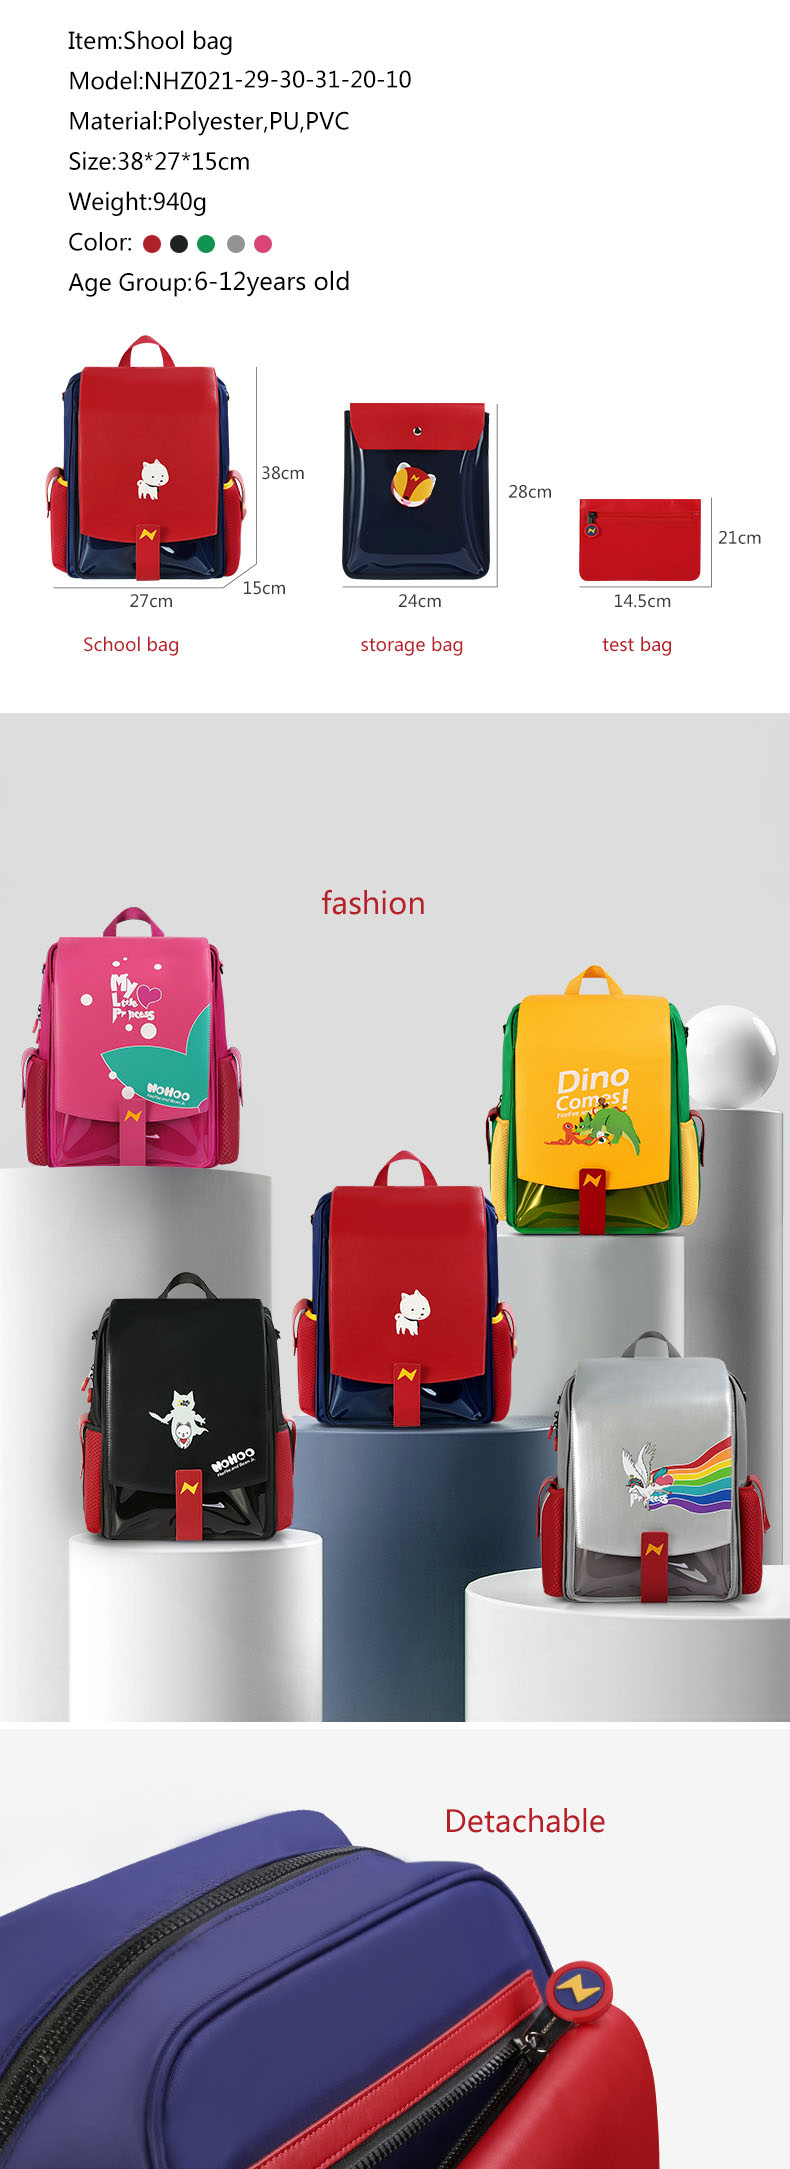 product-Nohoo new design school bag PU PVC Polyester 3 in 1 bags student primary school backpack-NOH